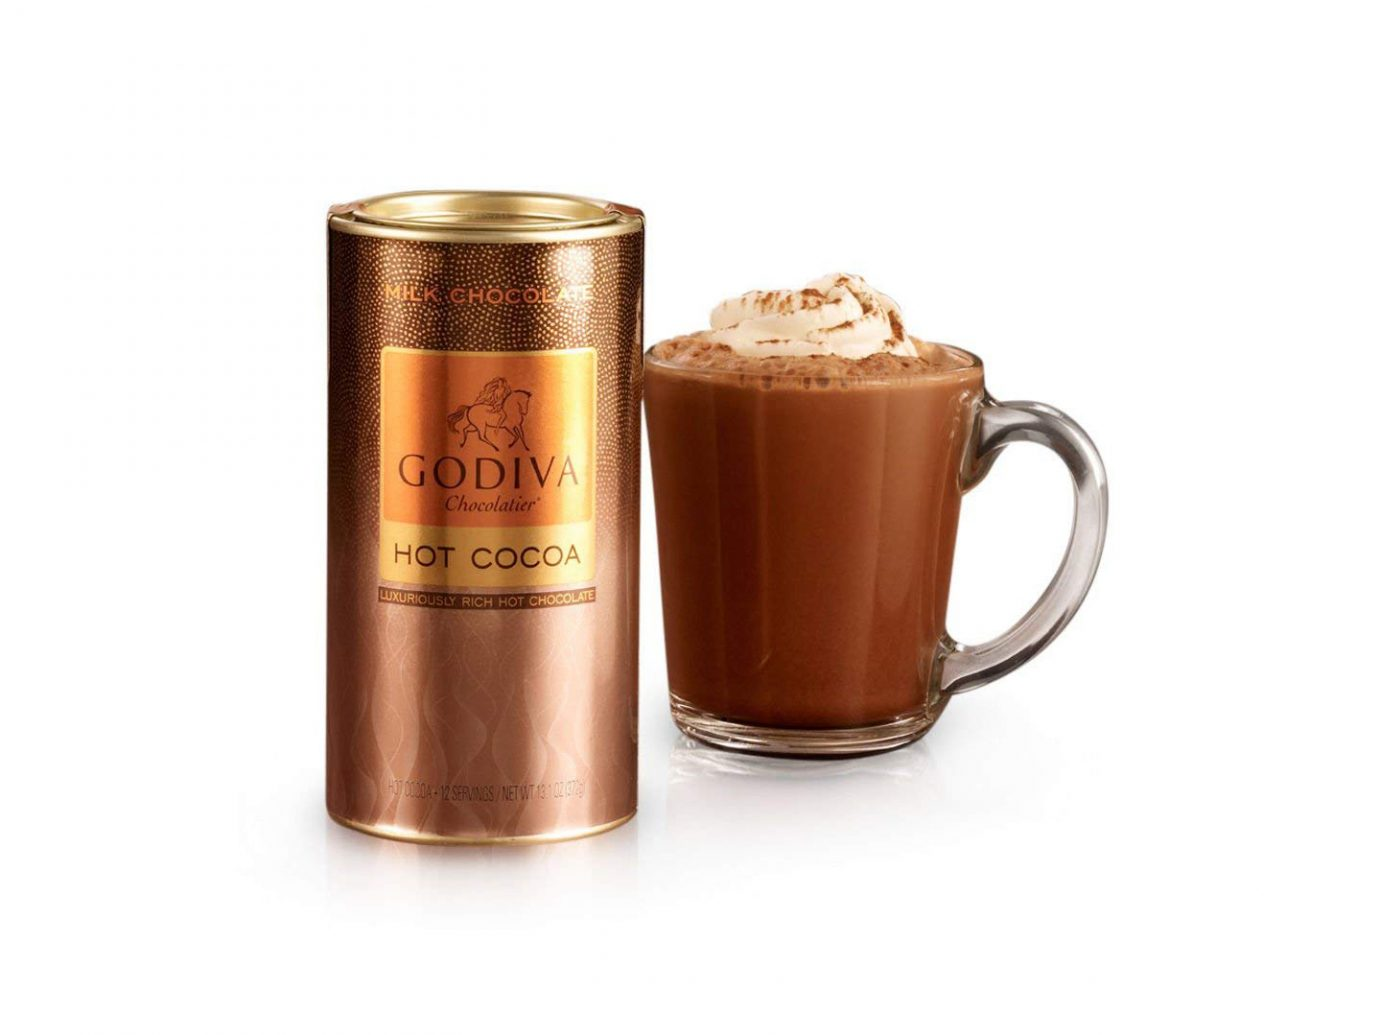 Hot Cocoa: GODIVA Chocolatier Milk Chocolate Hot Cocoa Canister